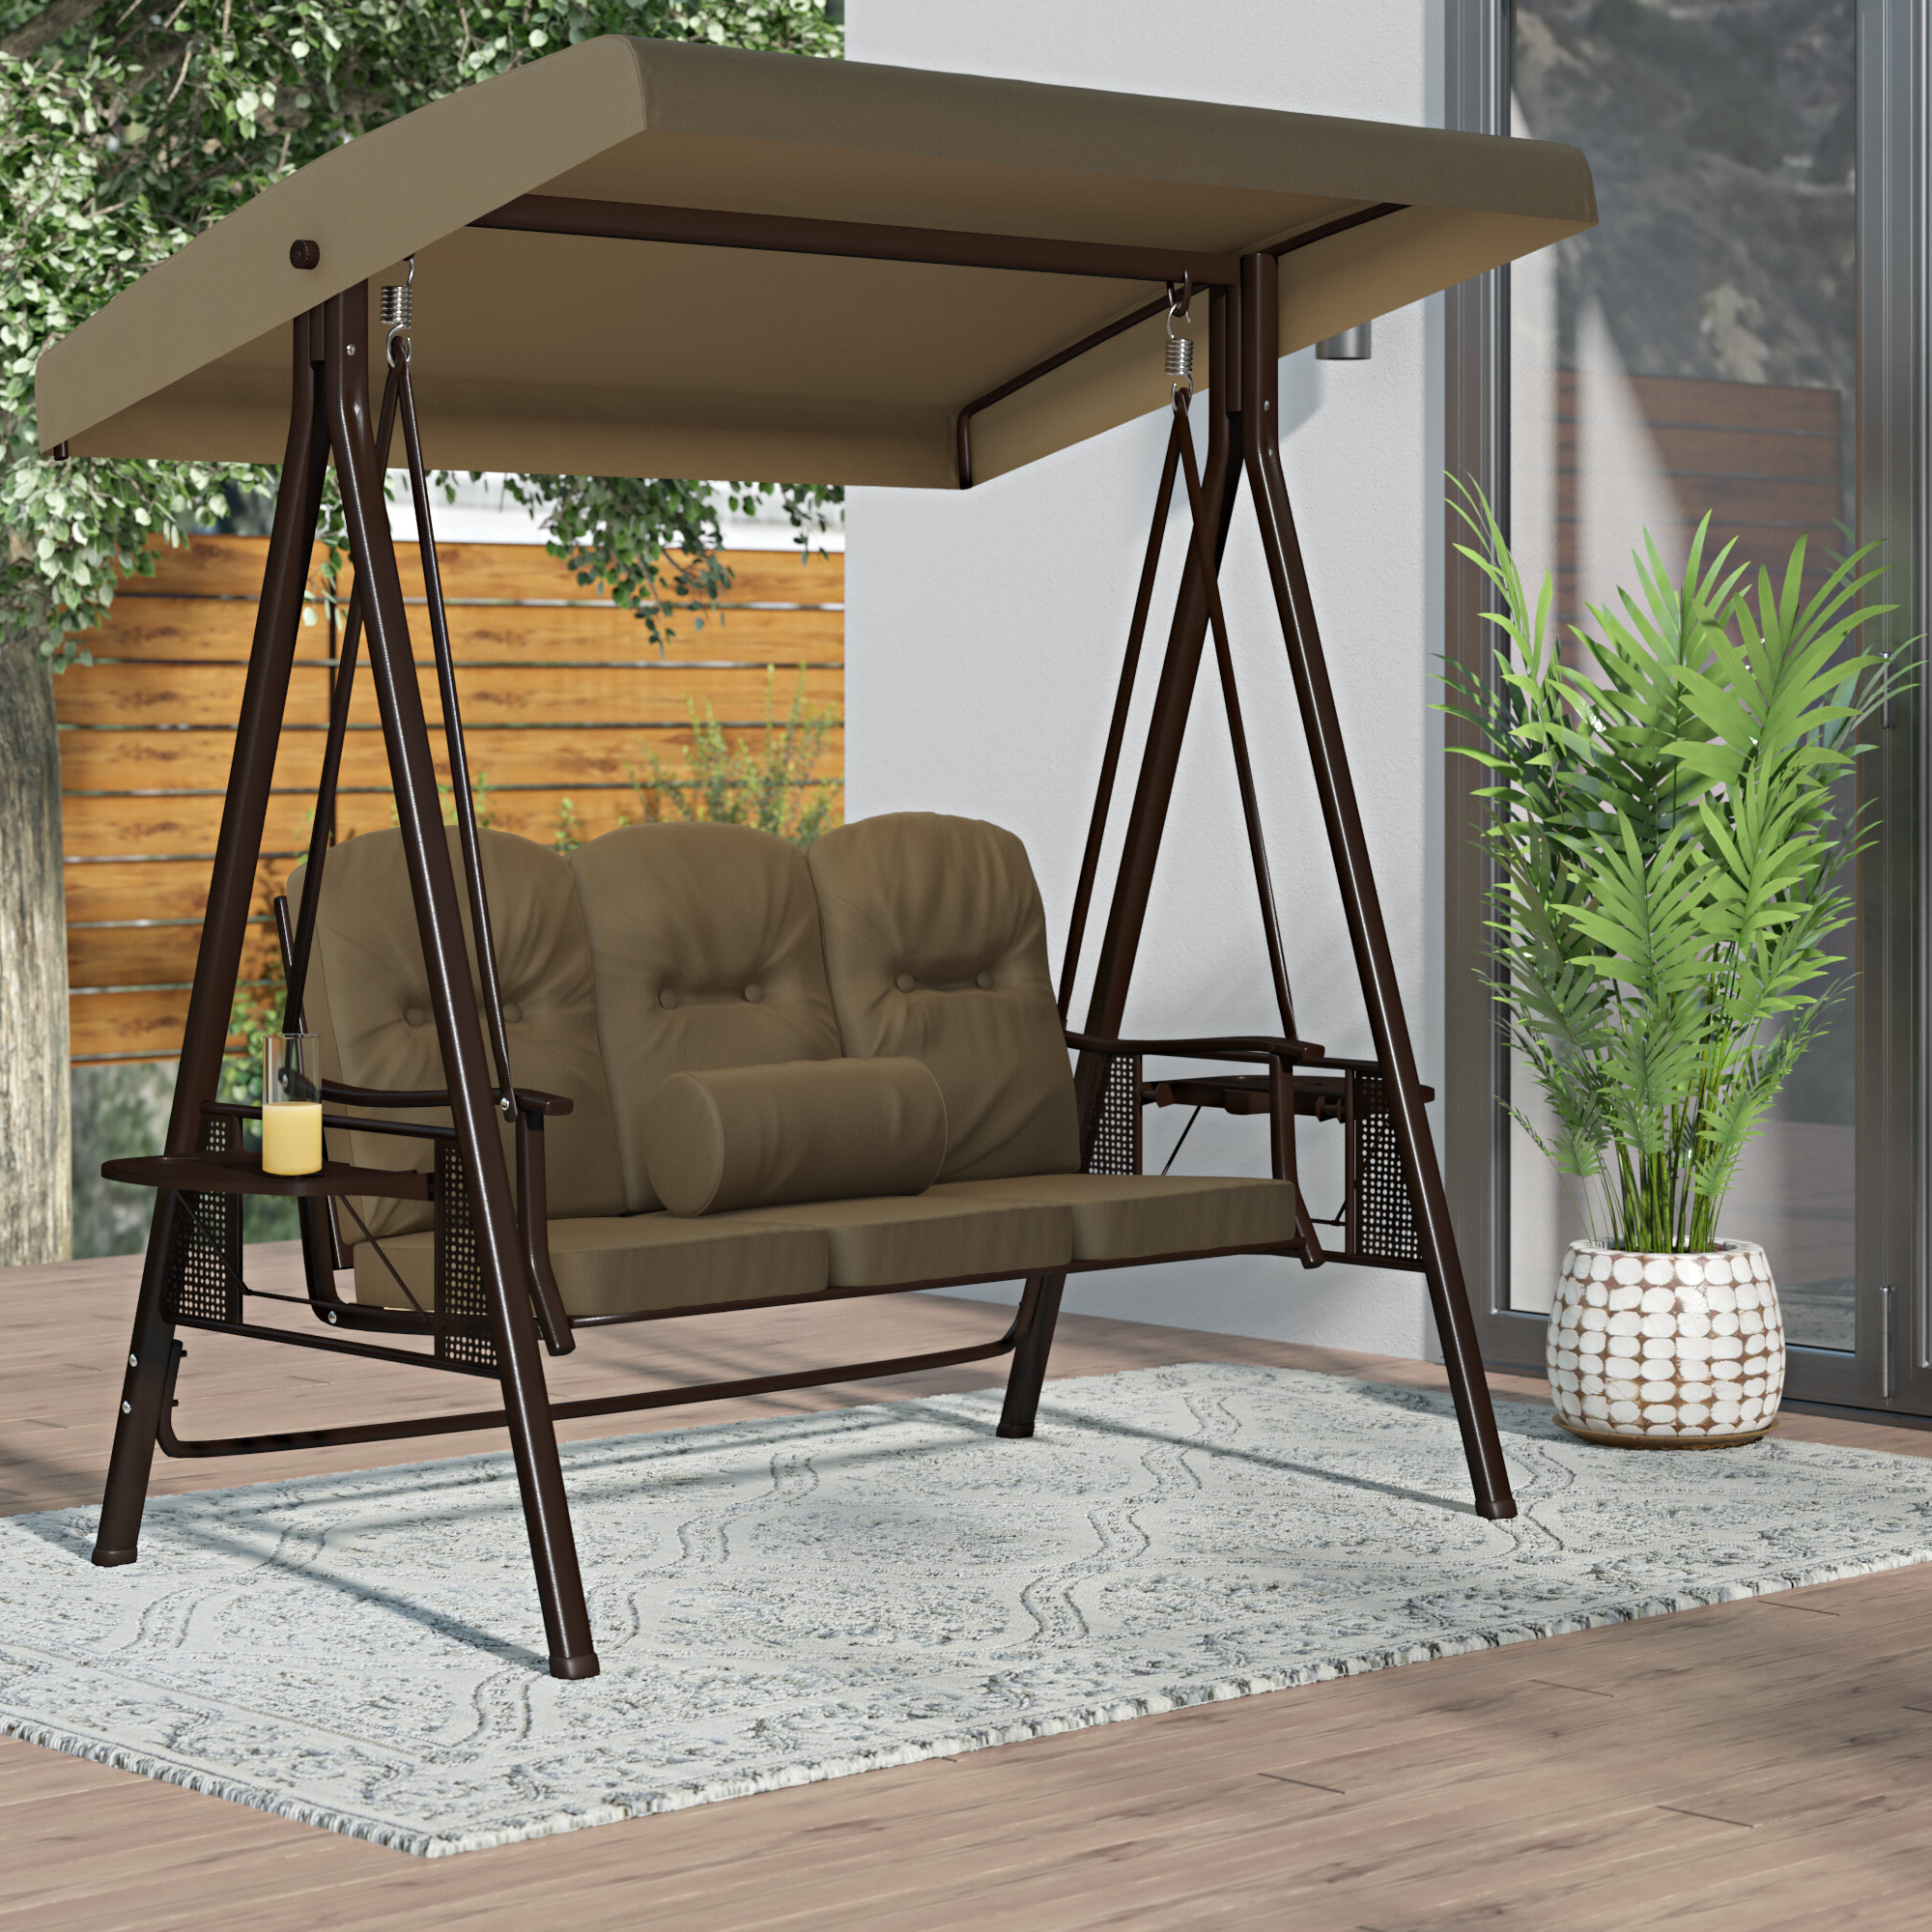 Popular Folkston Outdoor Canopy Porch Swing With Stand With Patio Porch Swings With Stand (View 8 of 25)